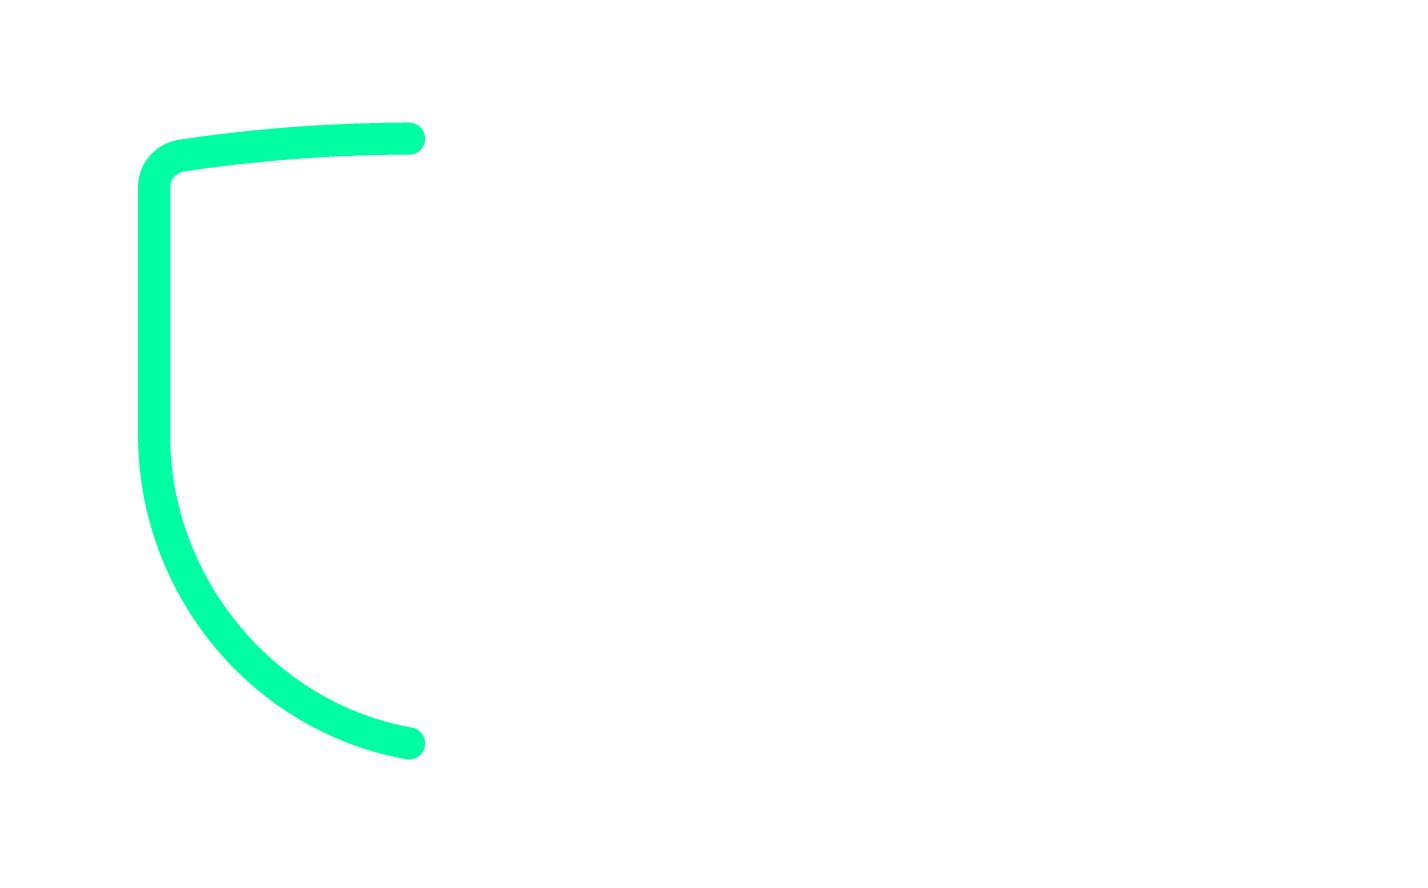 Farm Health Guardian